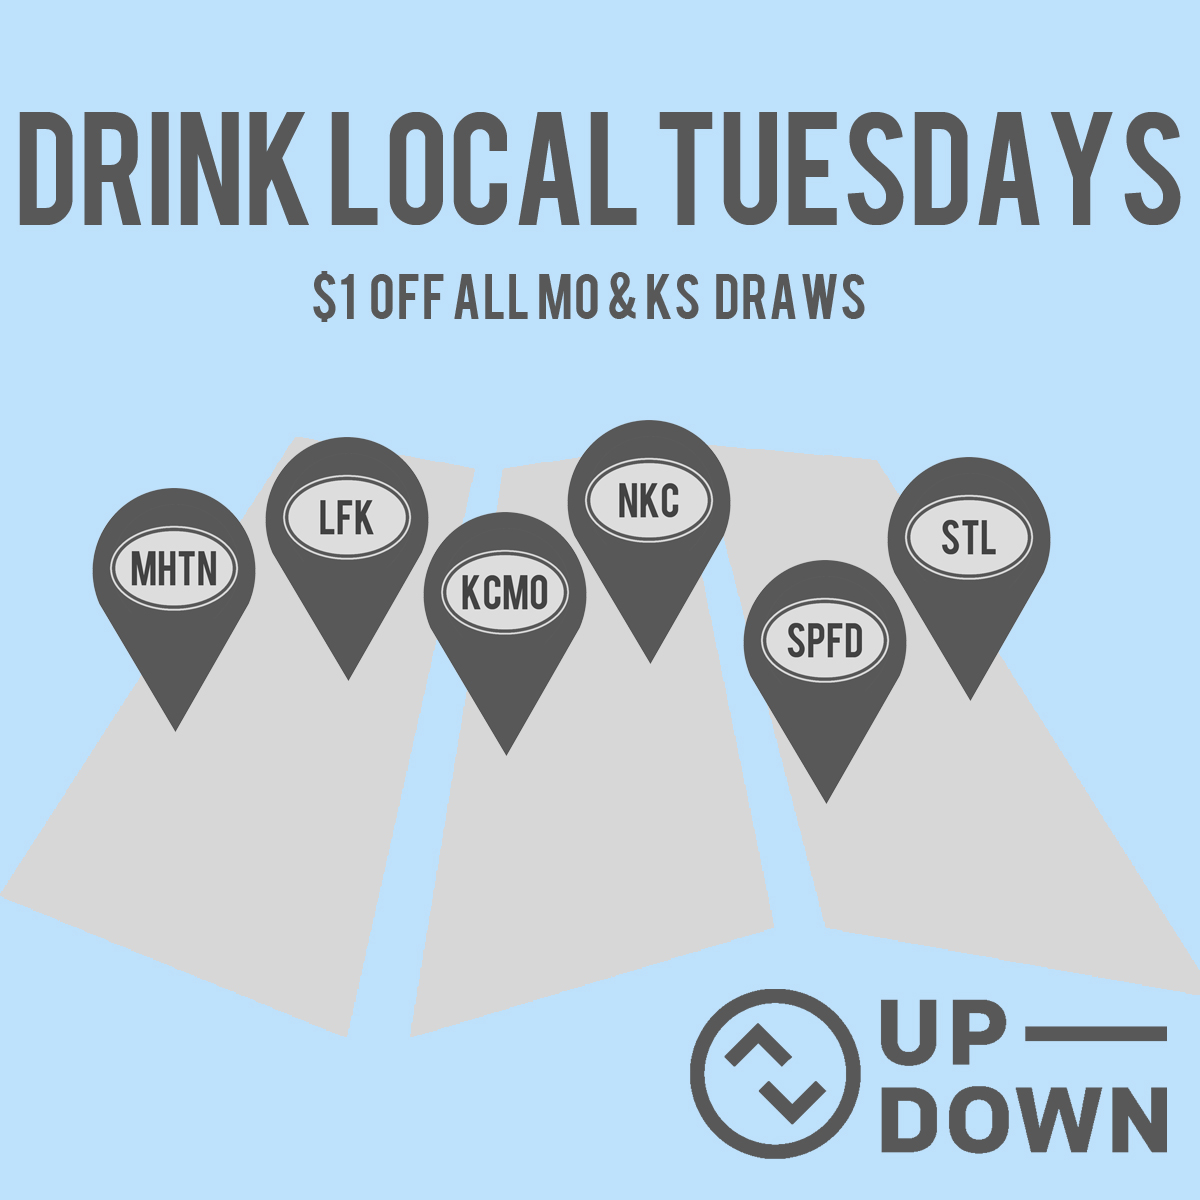 Up Down tuesday specials